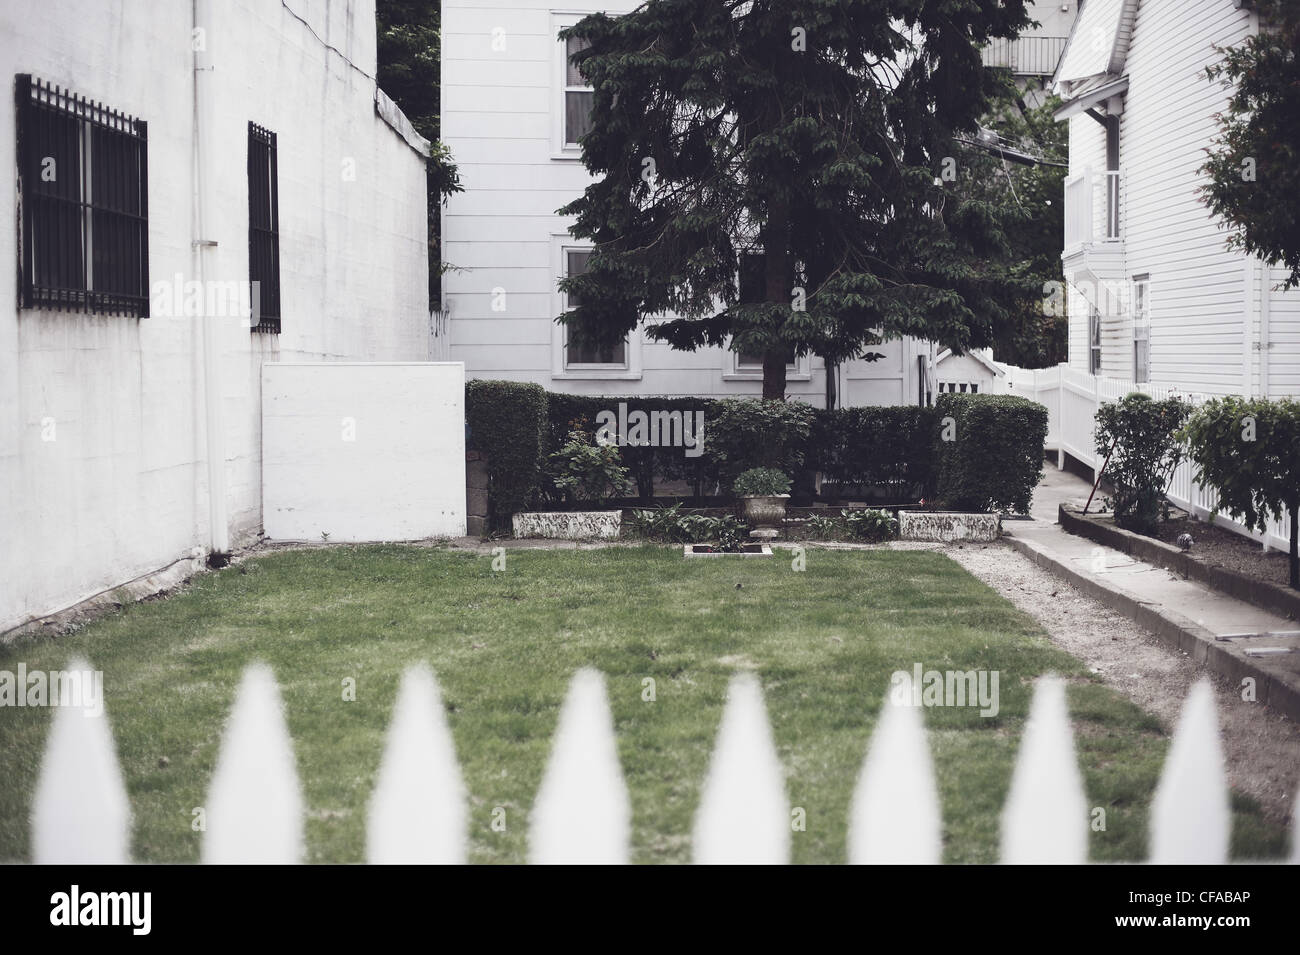 White picket fence in front yard - Stock Image